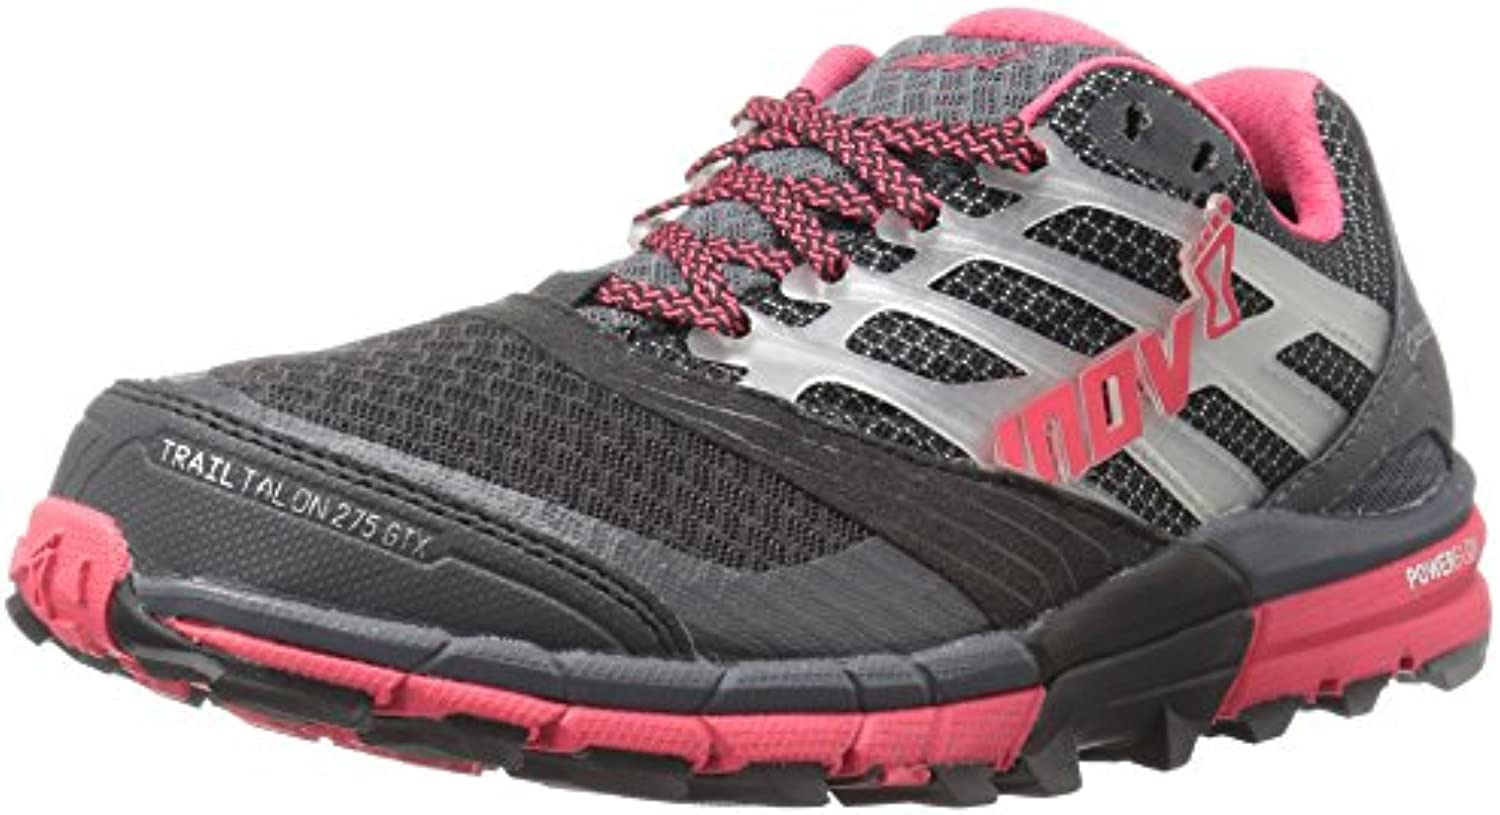 Inov8 Trail Talon 275 Gore-Tex Women's Zapatillas Para Correr - AW16